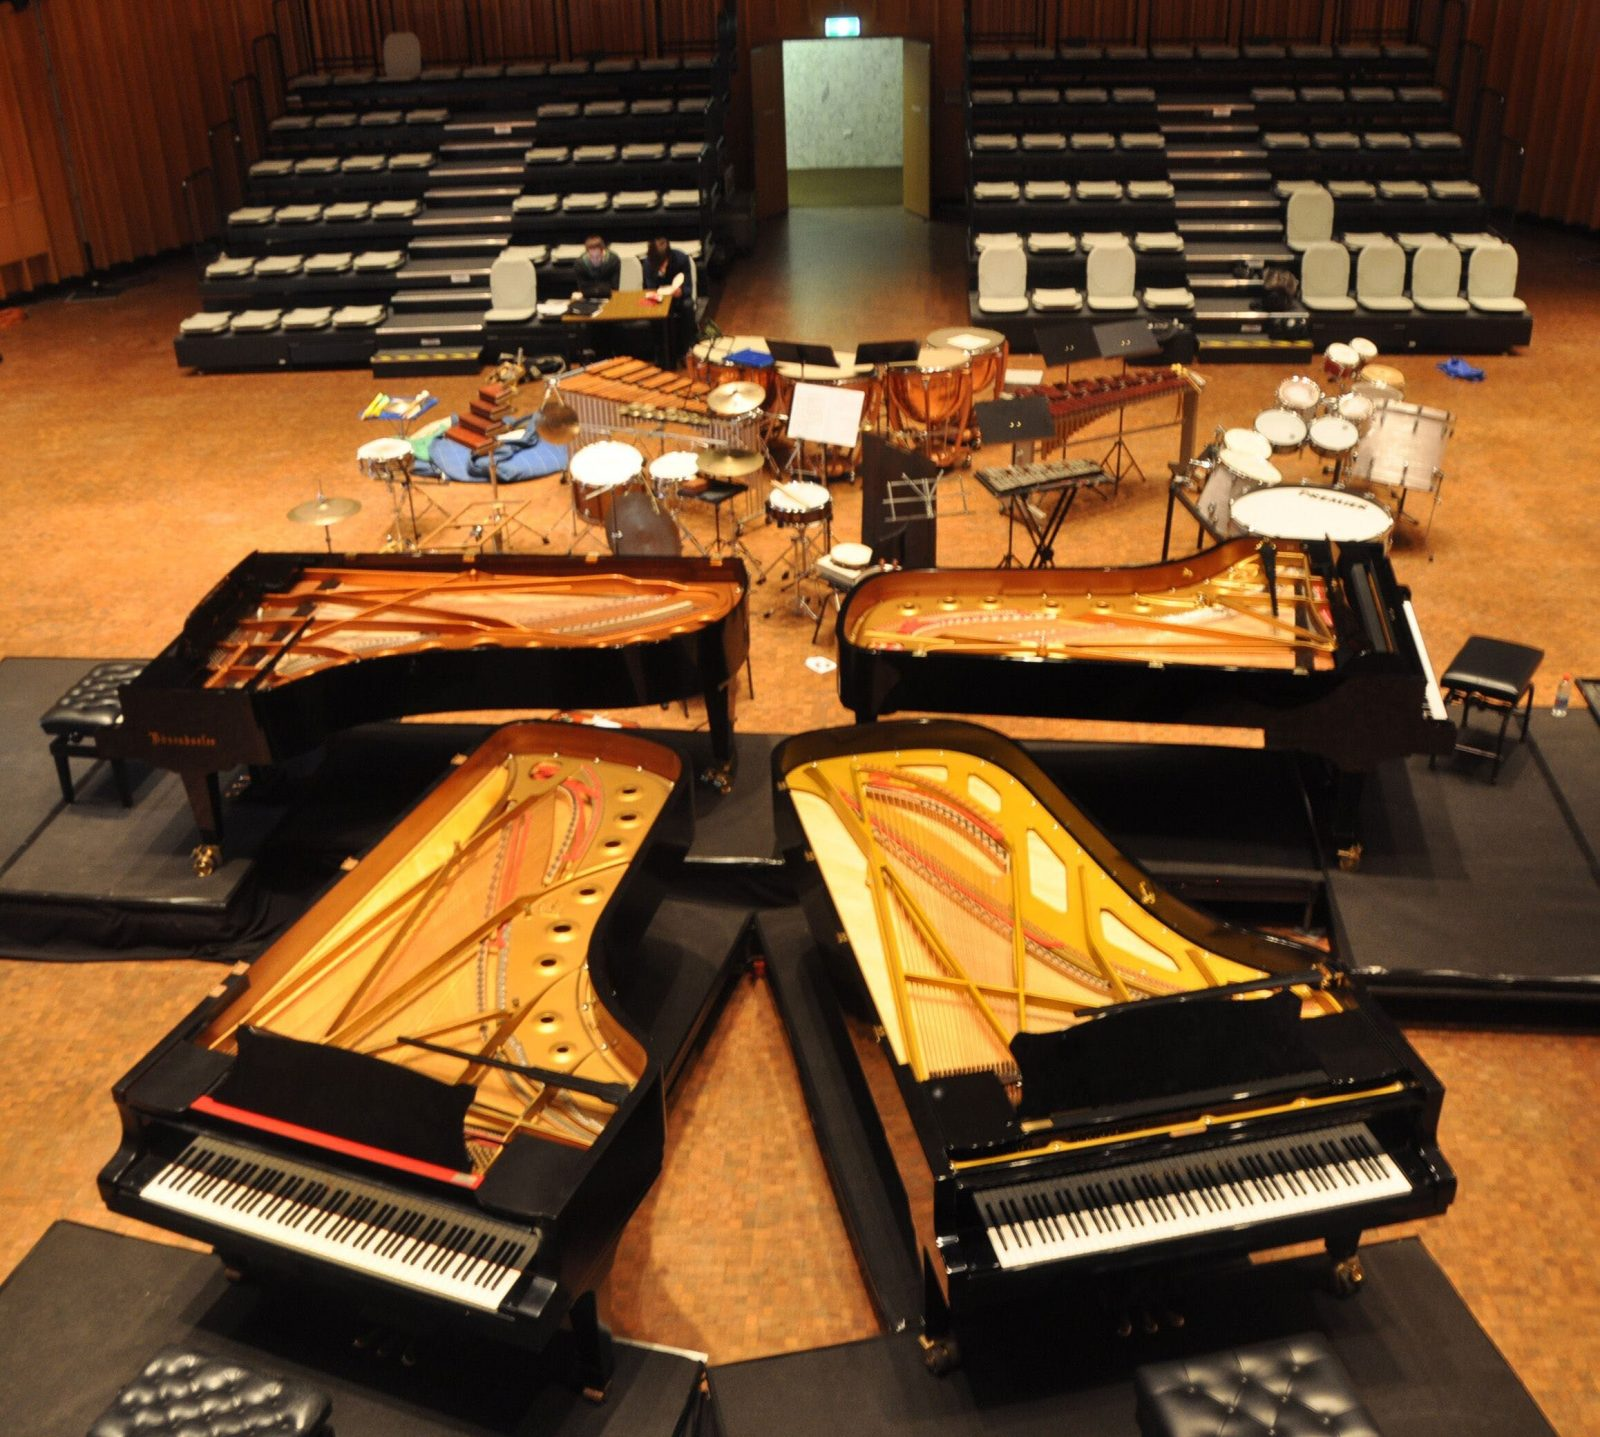 4 grand pianos, drums and various percussion instruments in a concert hall